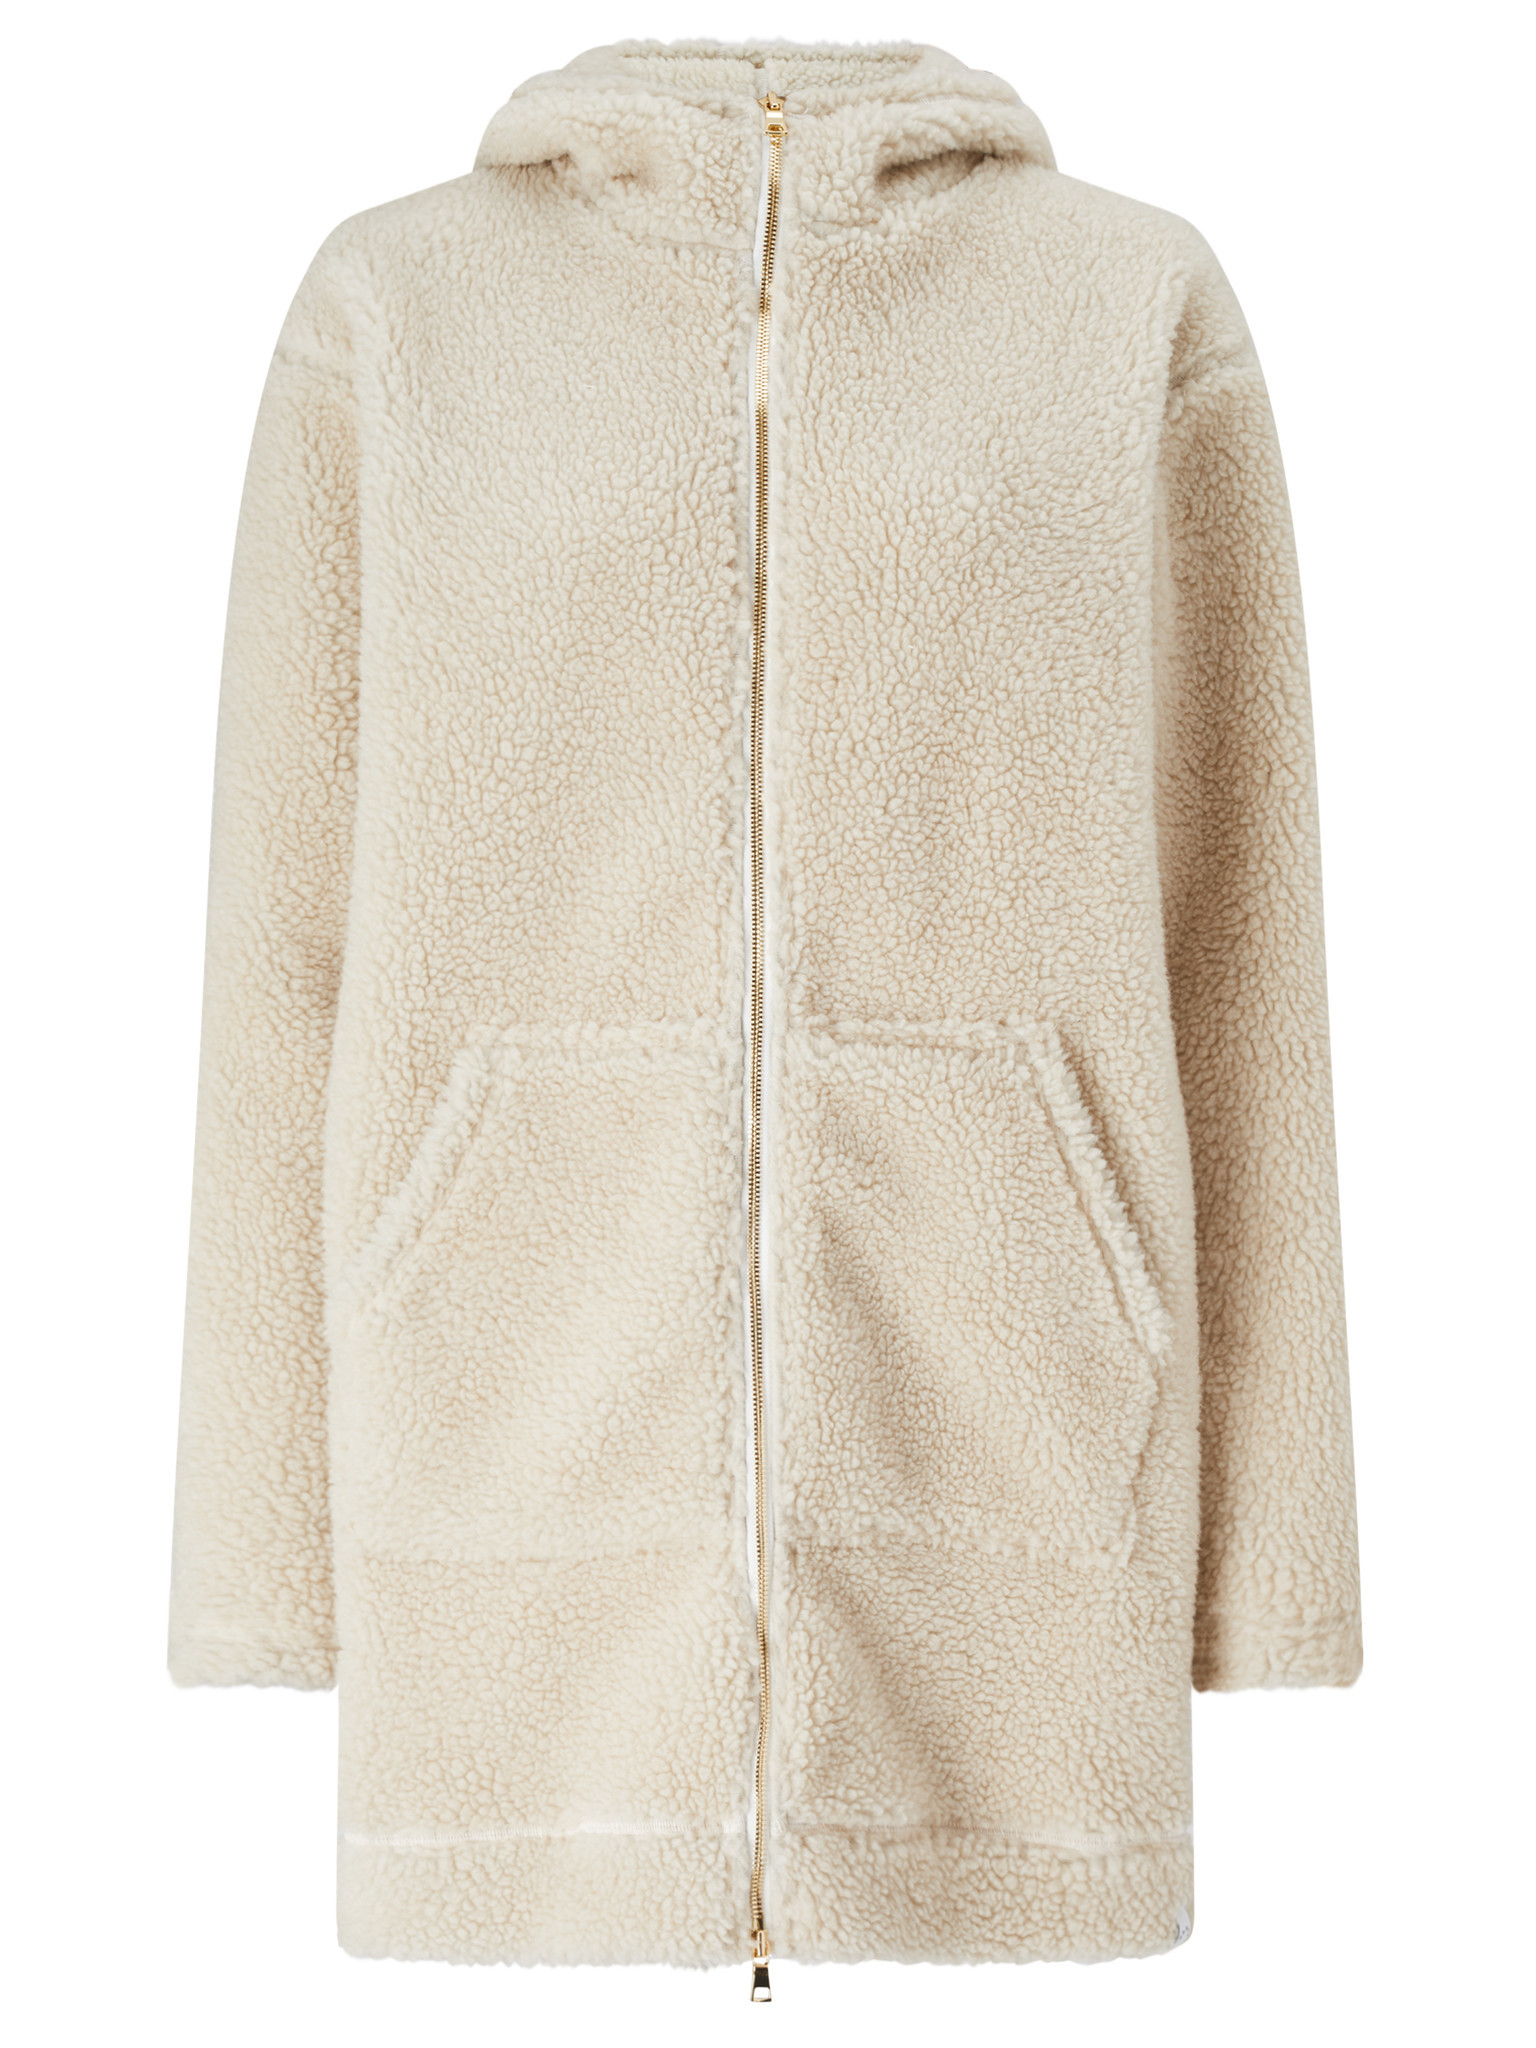 Inspired by cozy sherpa jackets, Varley, which has studios in London and Los Angeles, has launched a collection of outerwear in various styles.